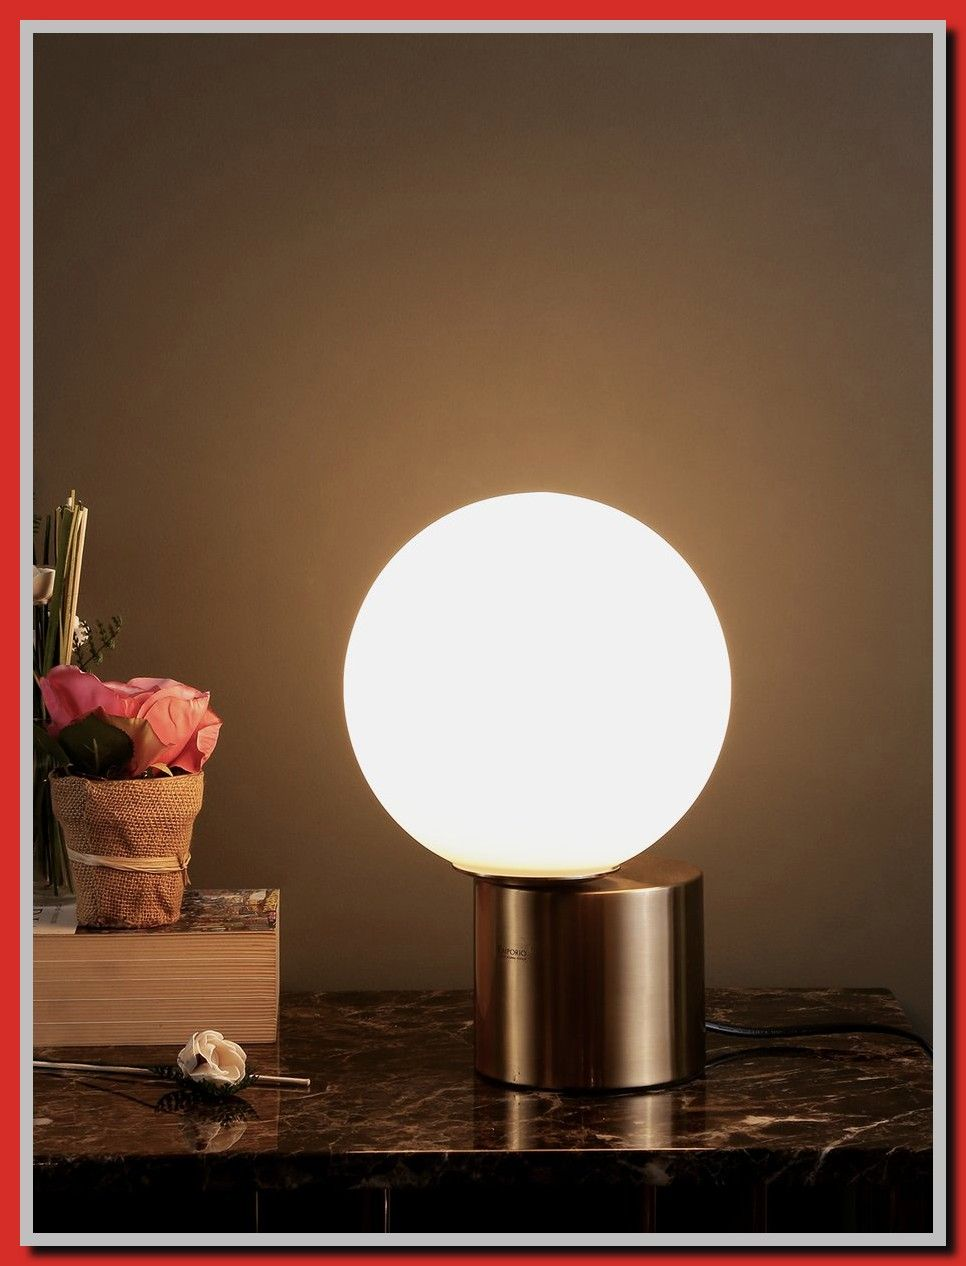 51 Reference Of Floor Lamps For Living Room Online India In 2020 Lamps Living Room Floor Lamp White Floor Lamp